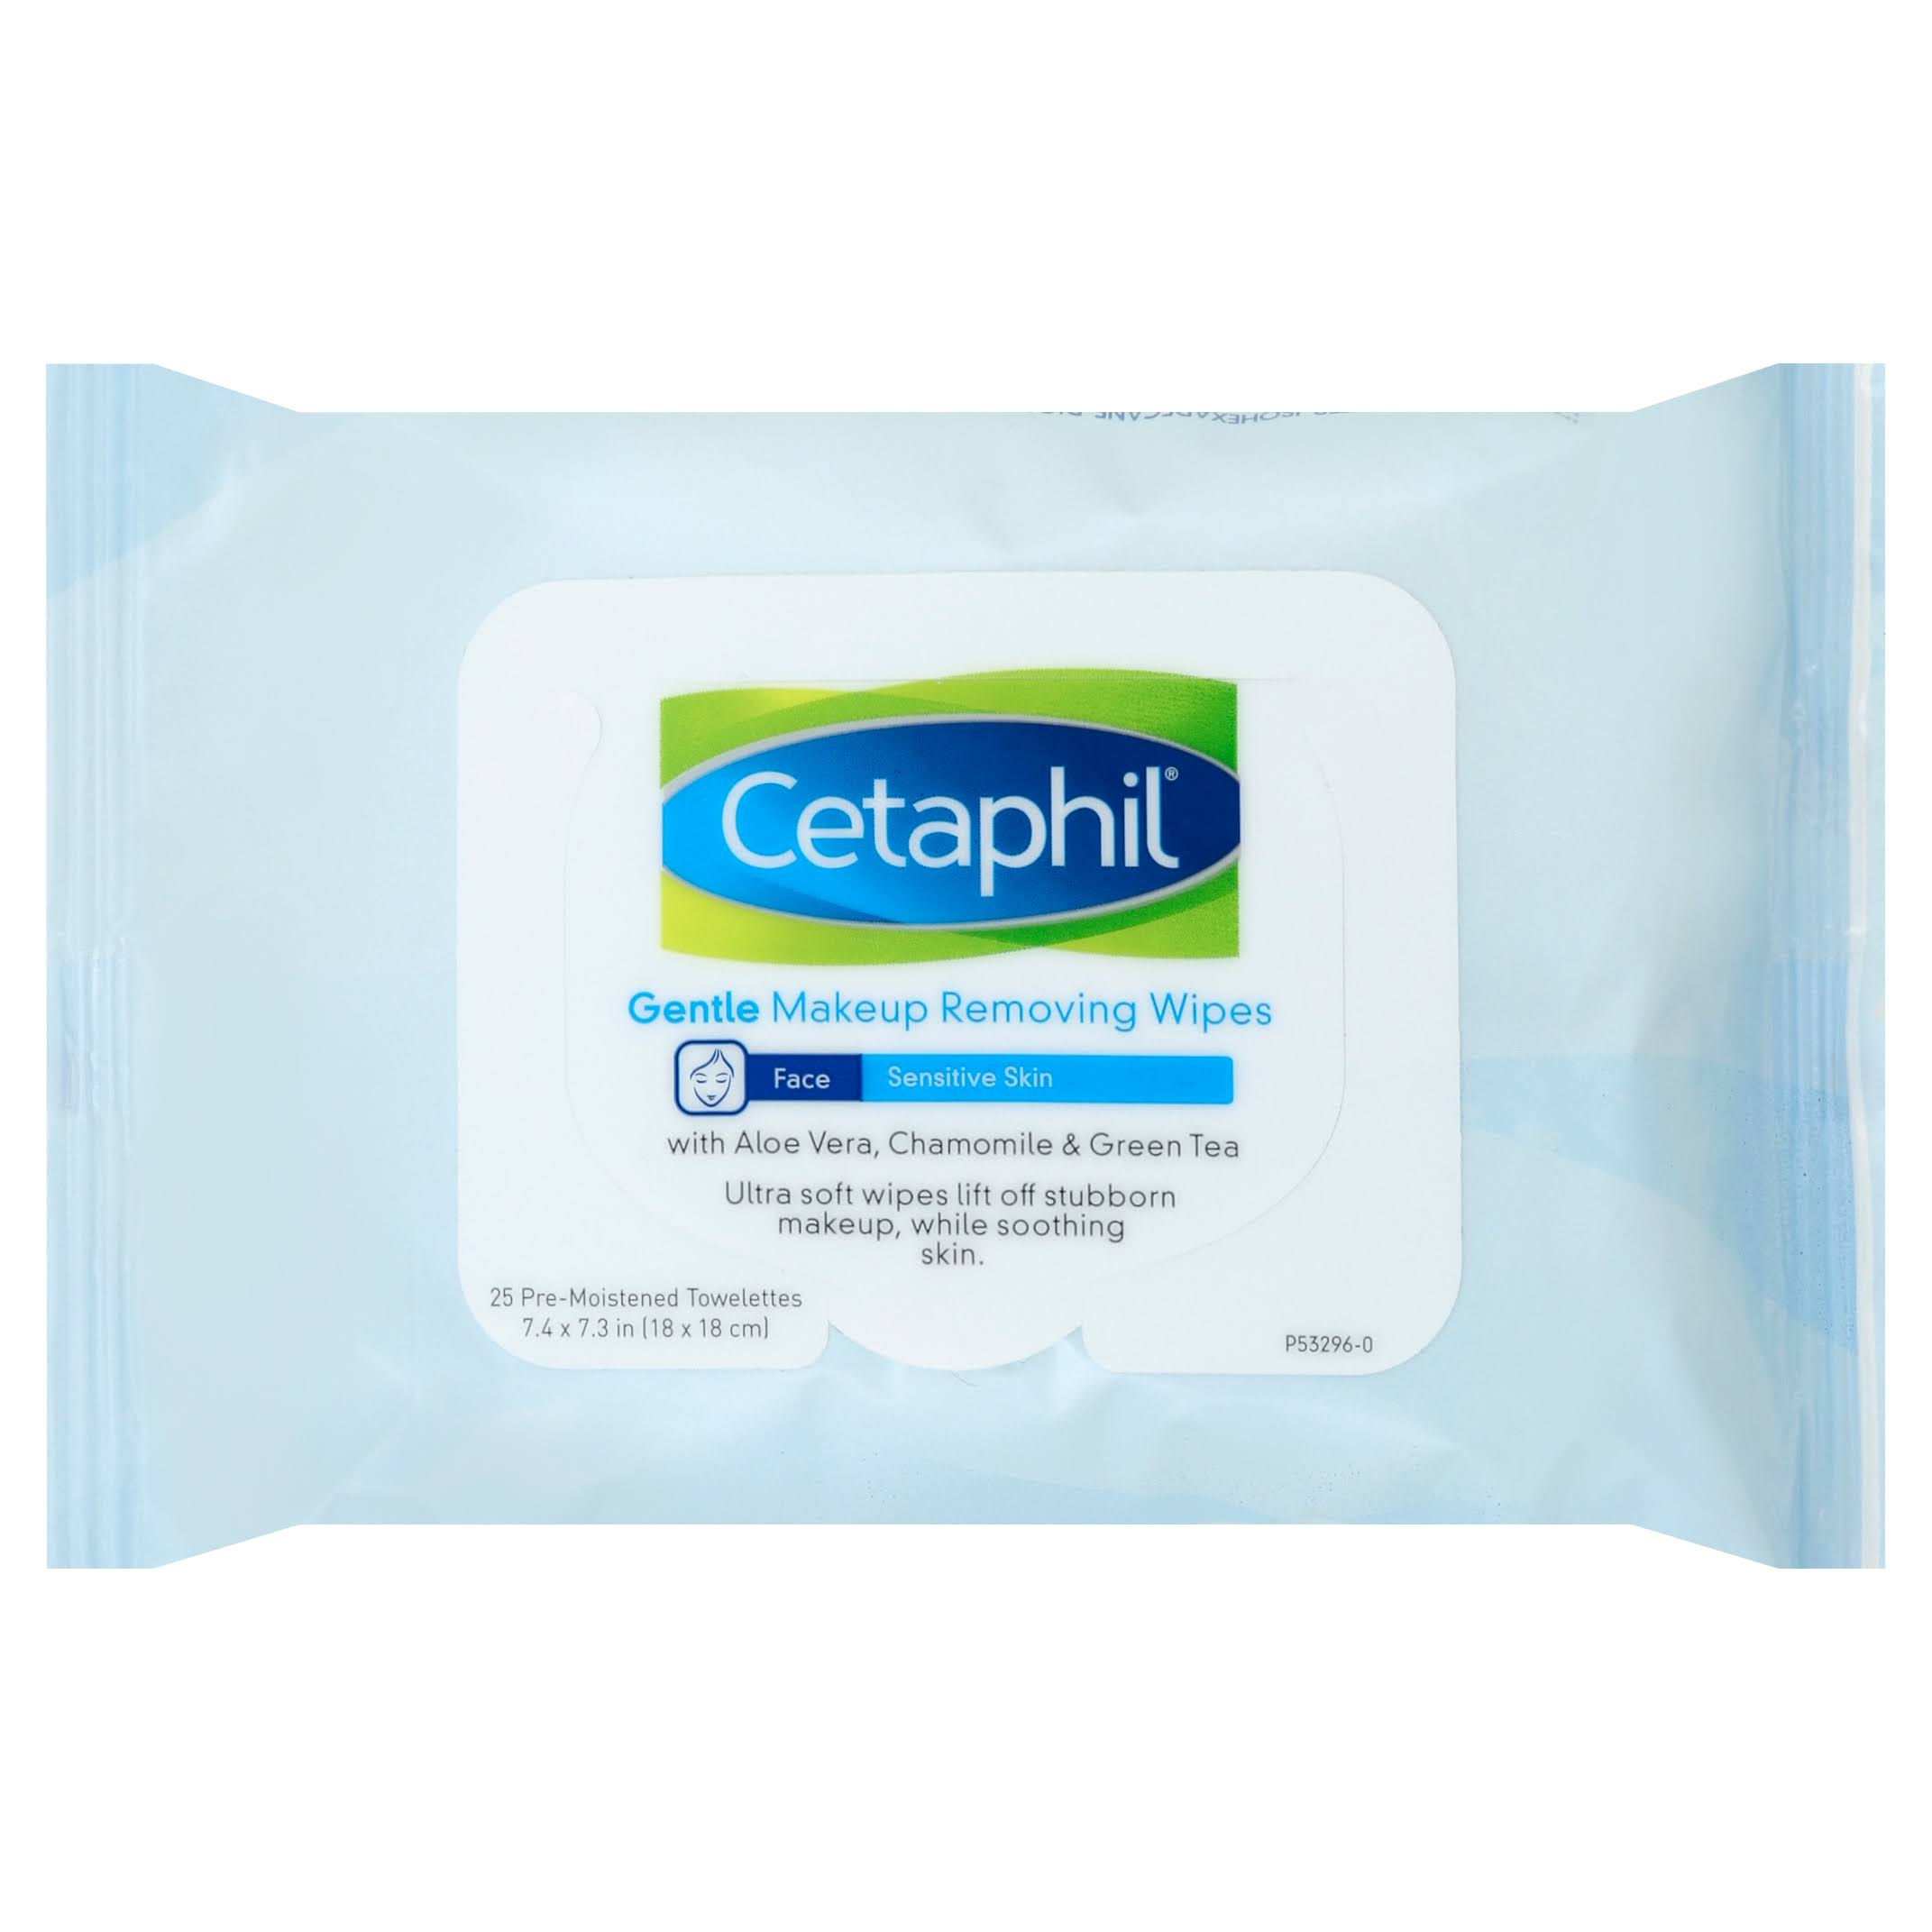 Cetaphil Gentle Makeup Removing Wipes - 25 Count